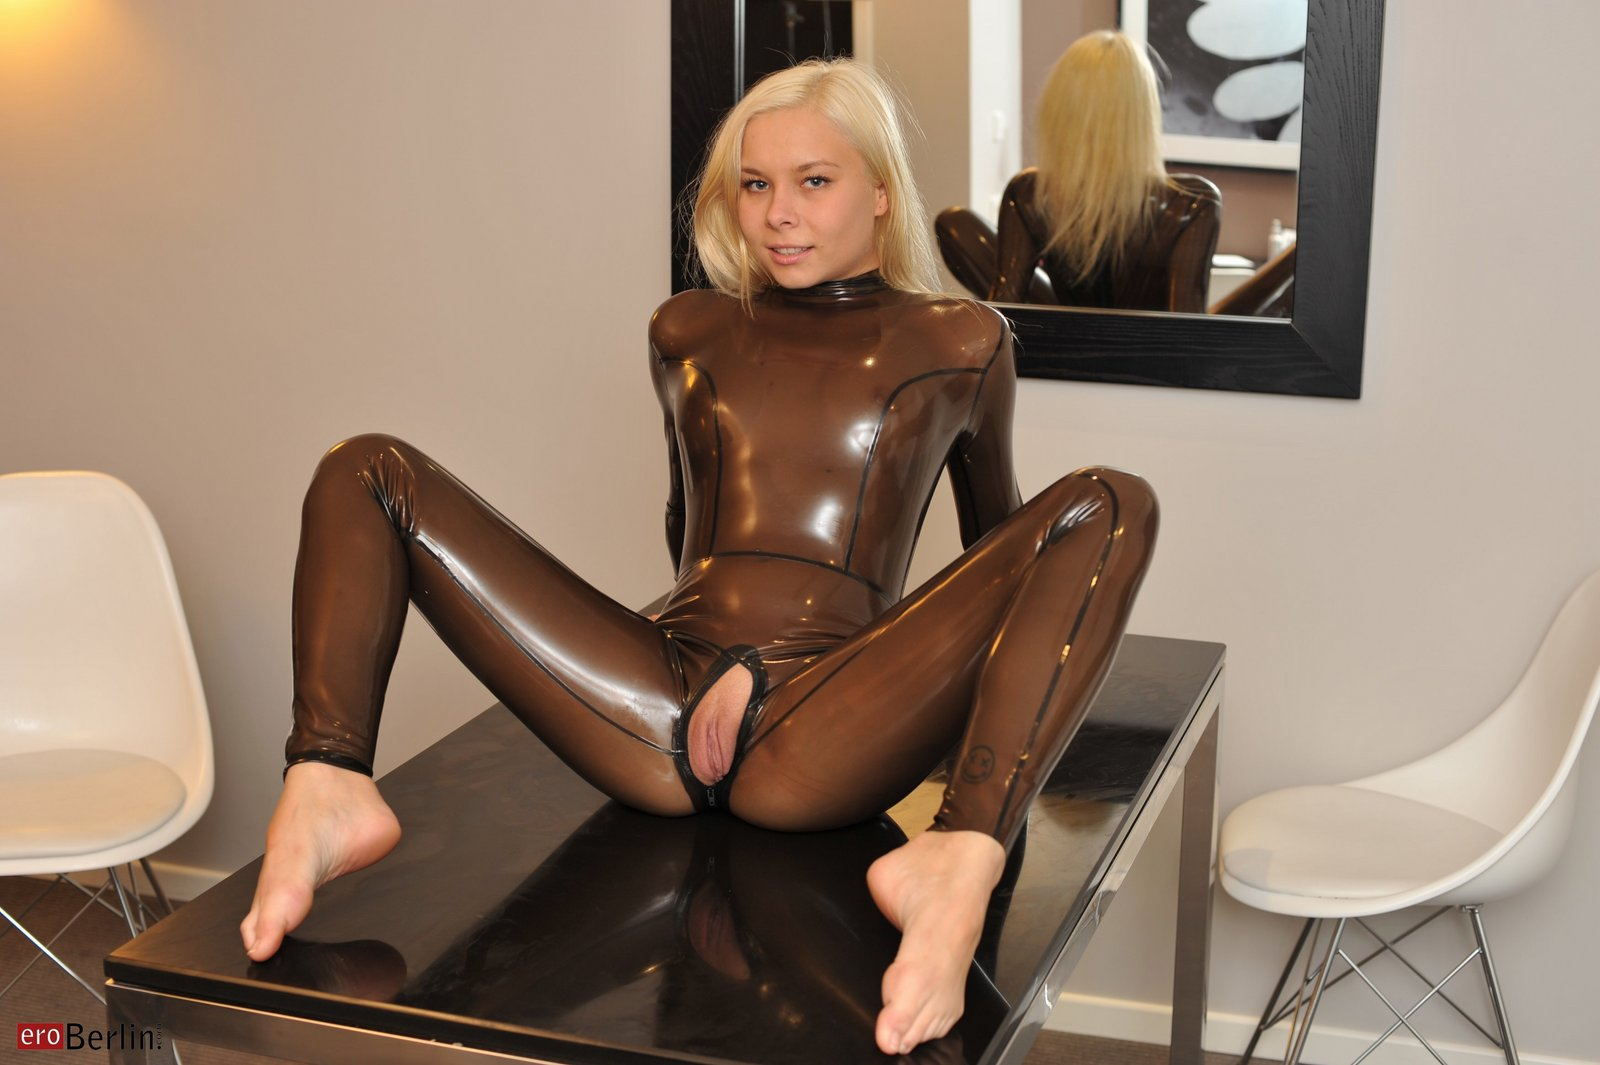 Latex fethis women nudes opinion